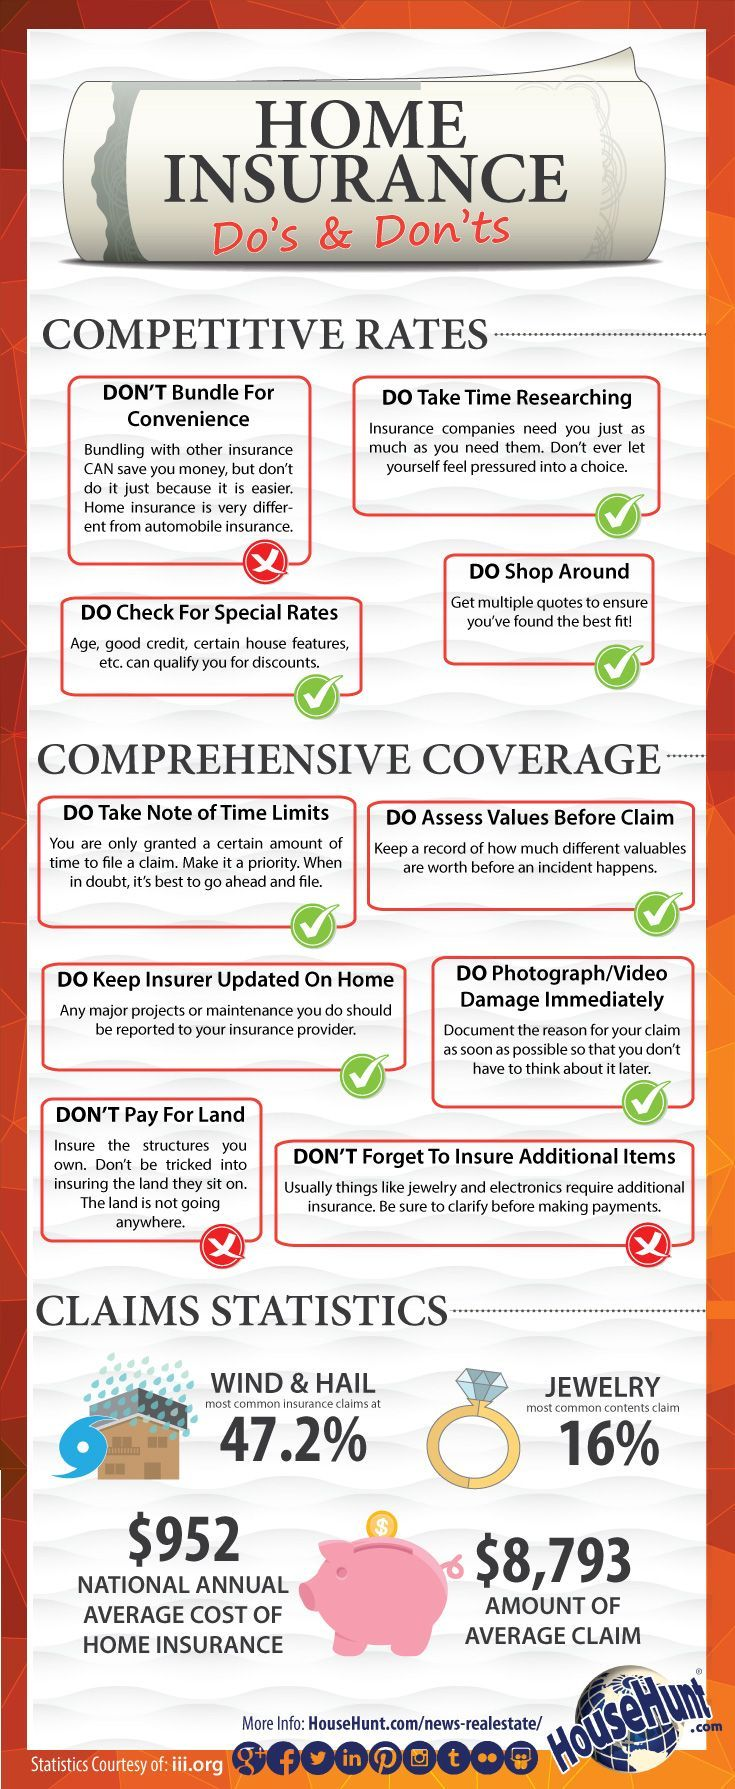 Homeowners Insurance Quote Unique Home Insurance Do's And Don'ts Infographic  Buy Health Insurance